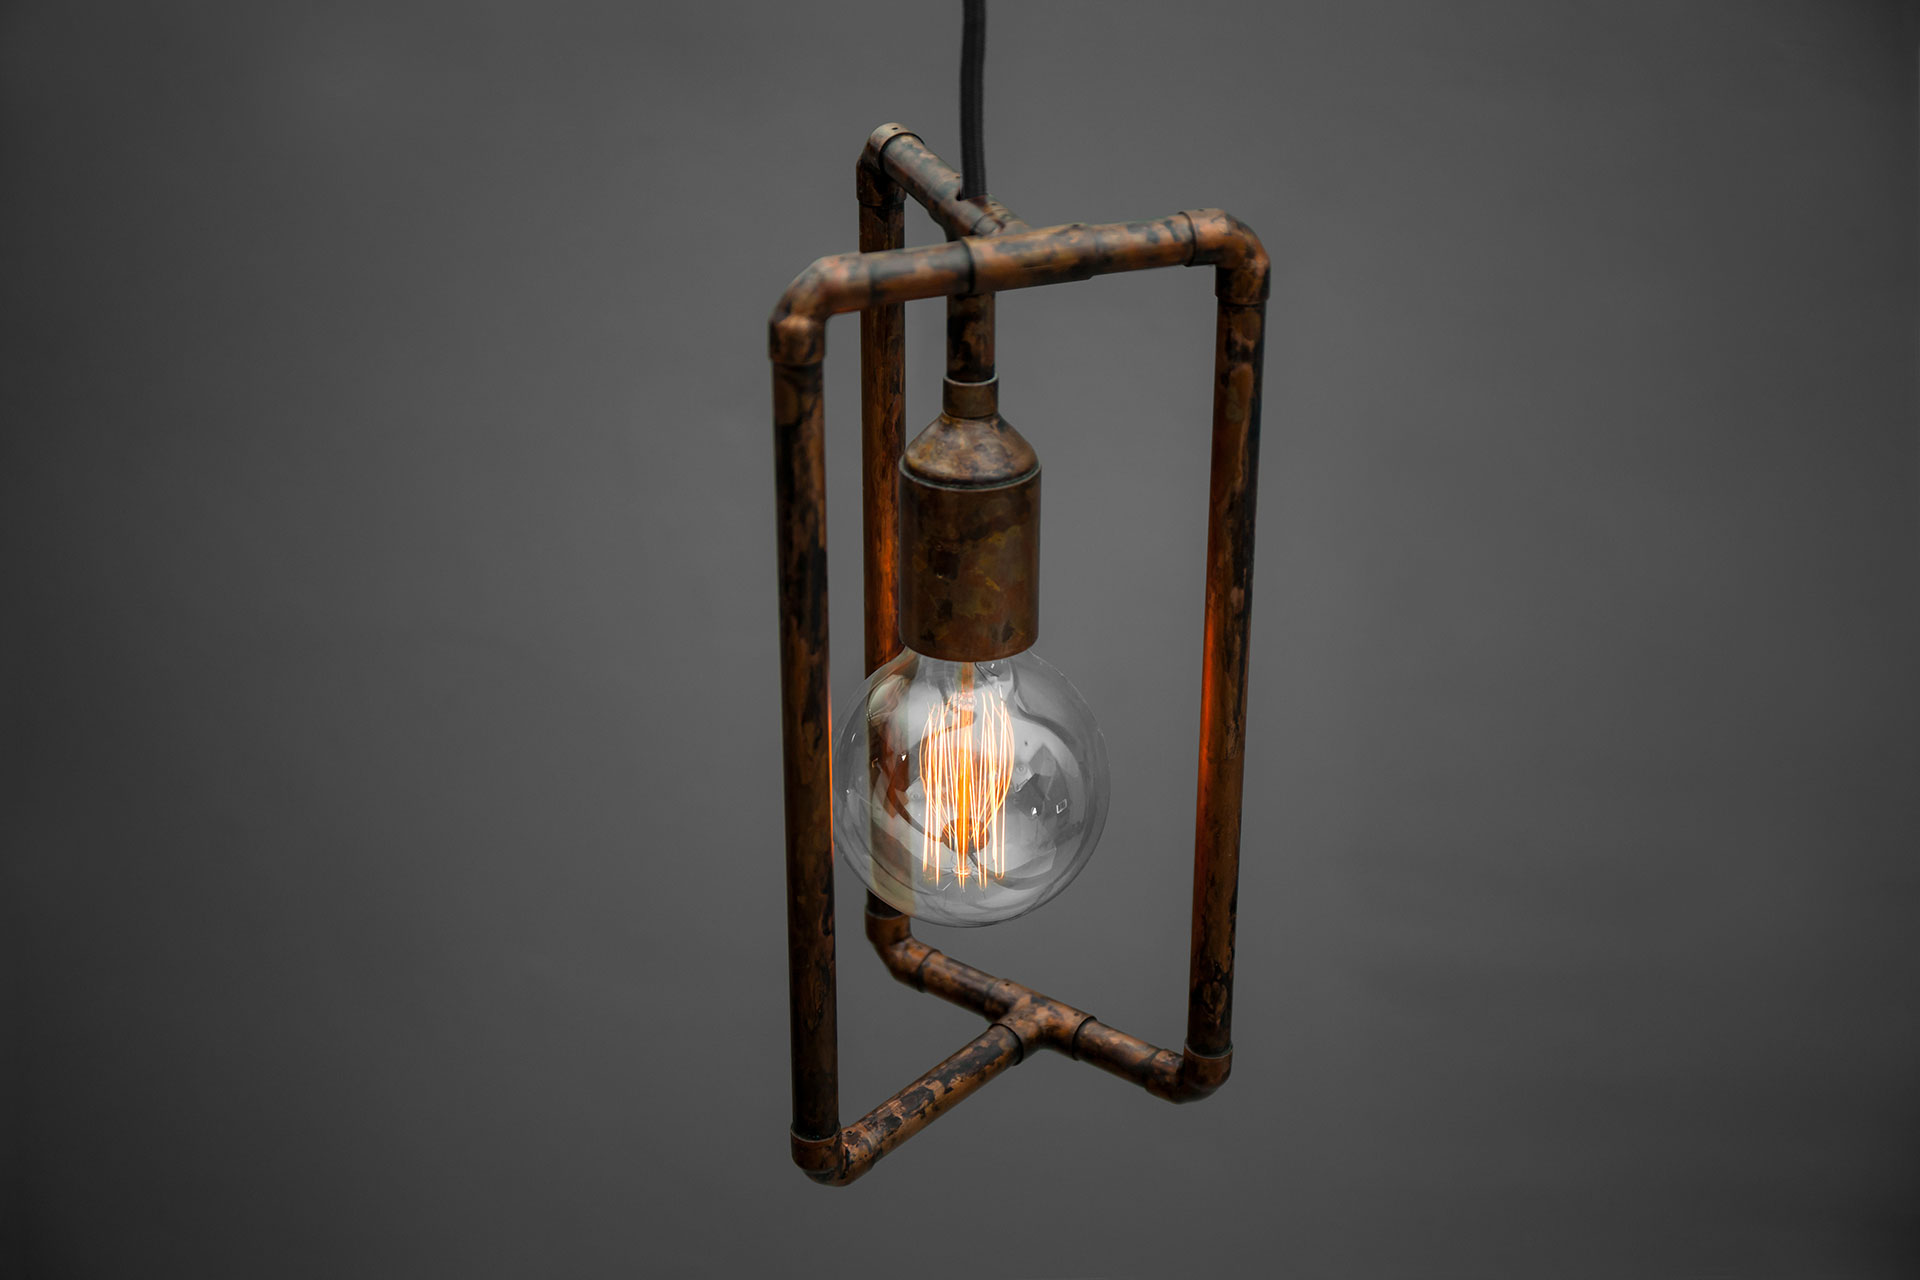 Vintage industrial ceiling lamp in aged copper metal finish